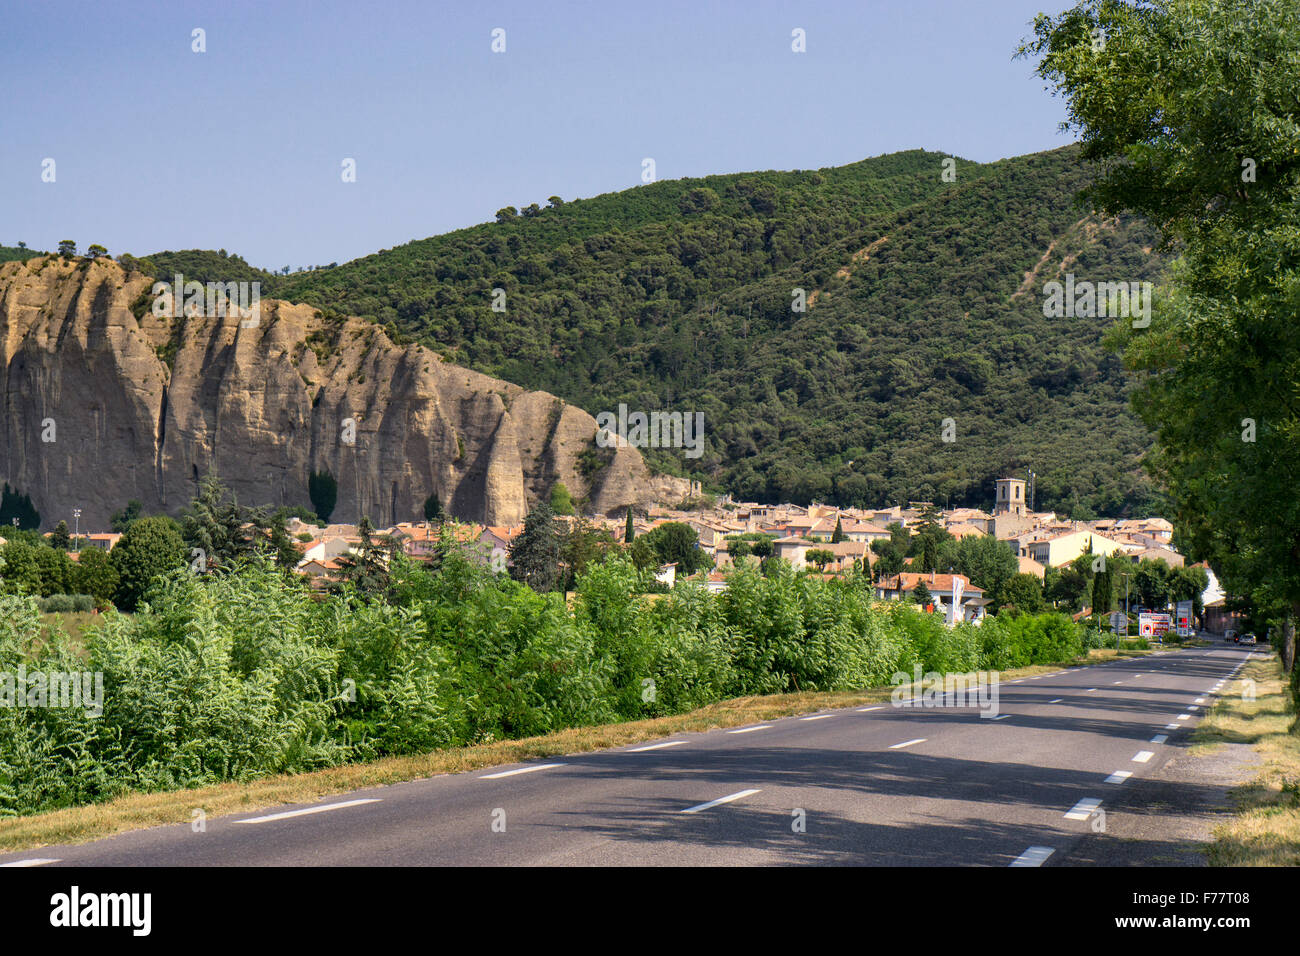 The Penitents des Mees, between Forcalquier, Sisteron and Digne, Alpes-de-Haute-Provence, France - Stock Image